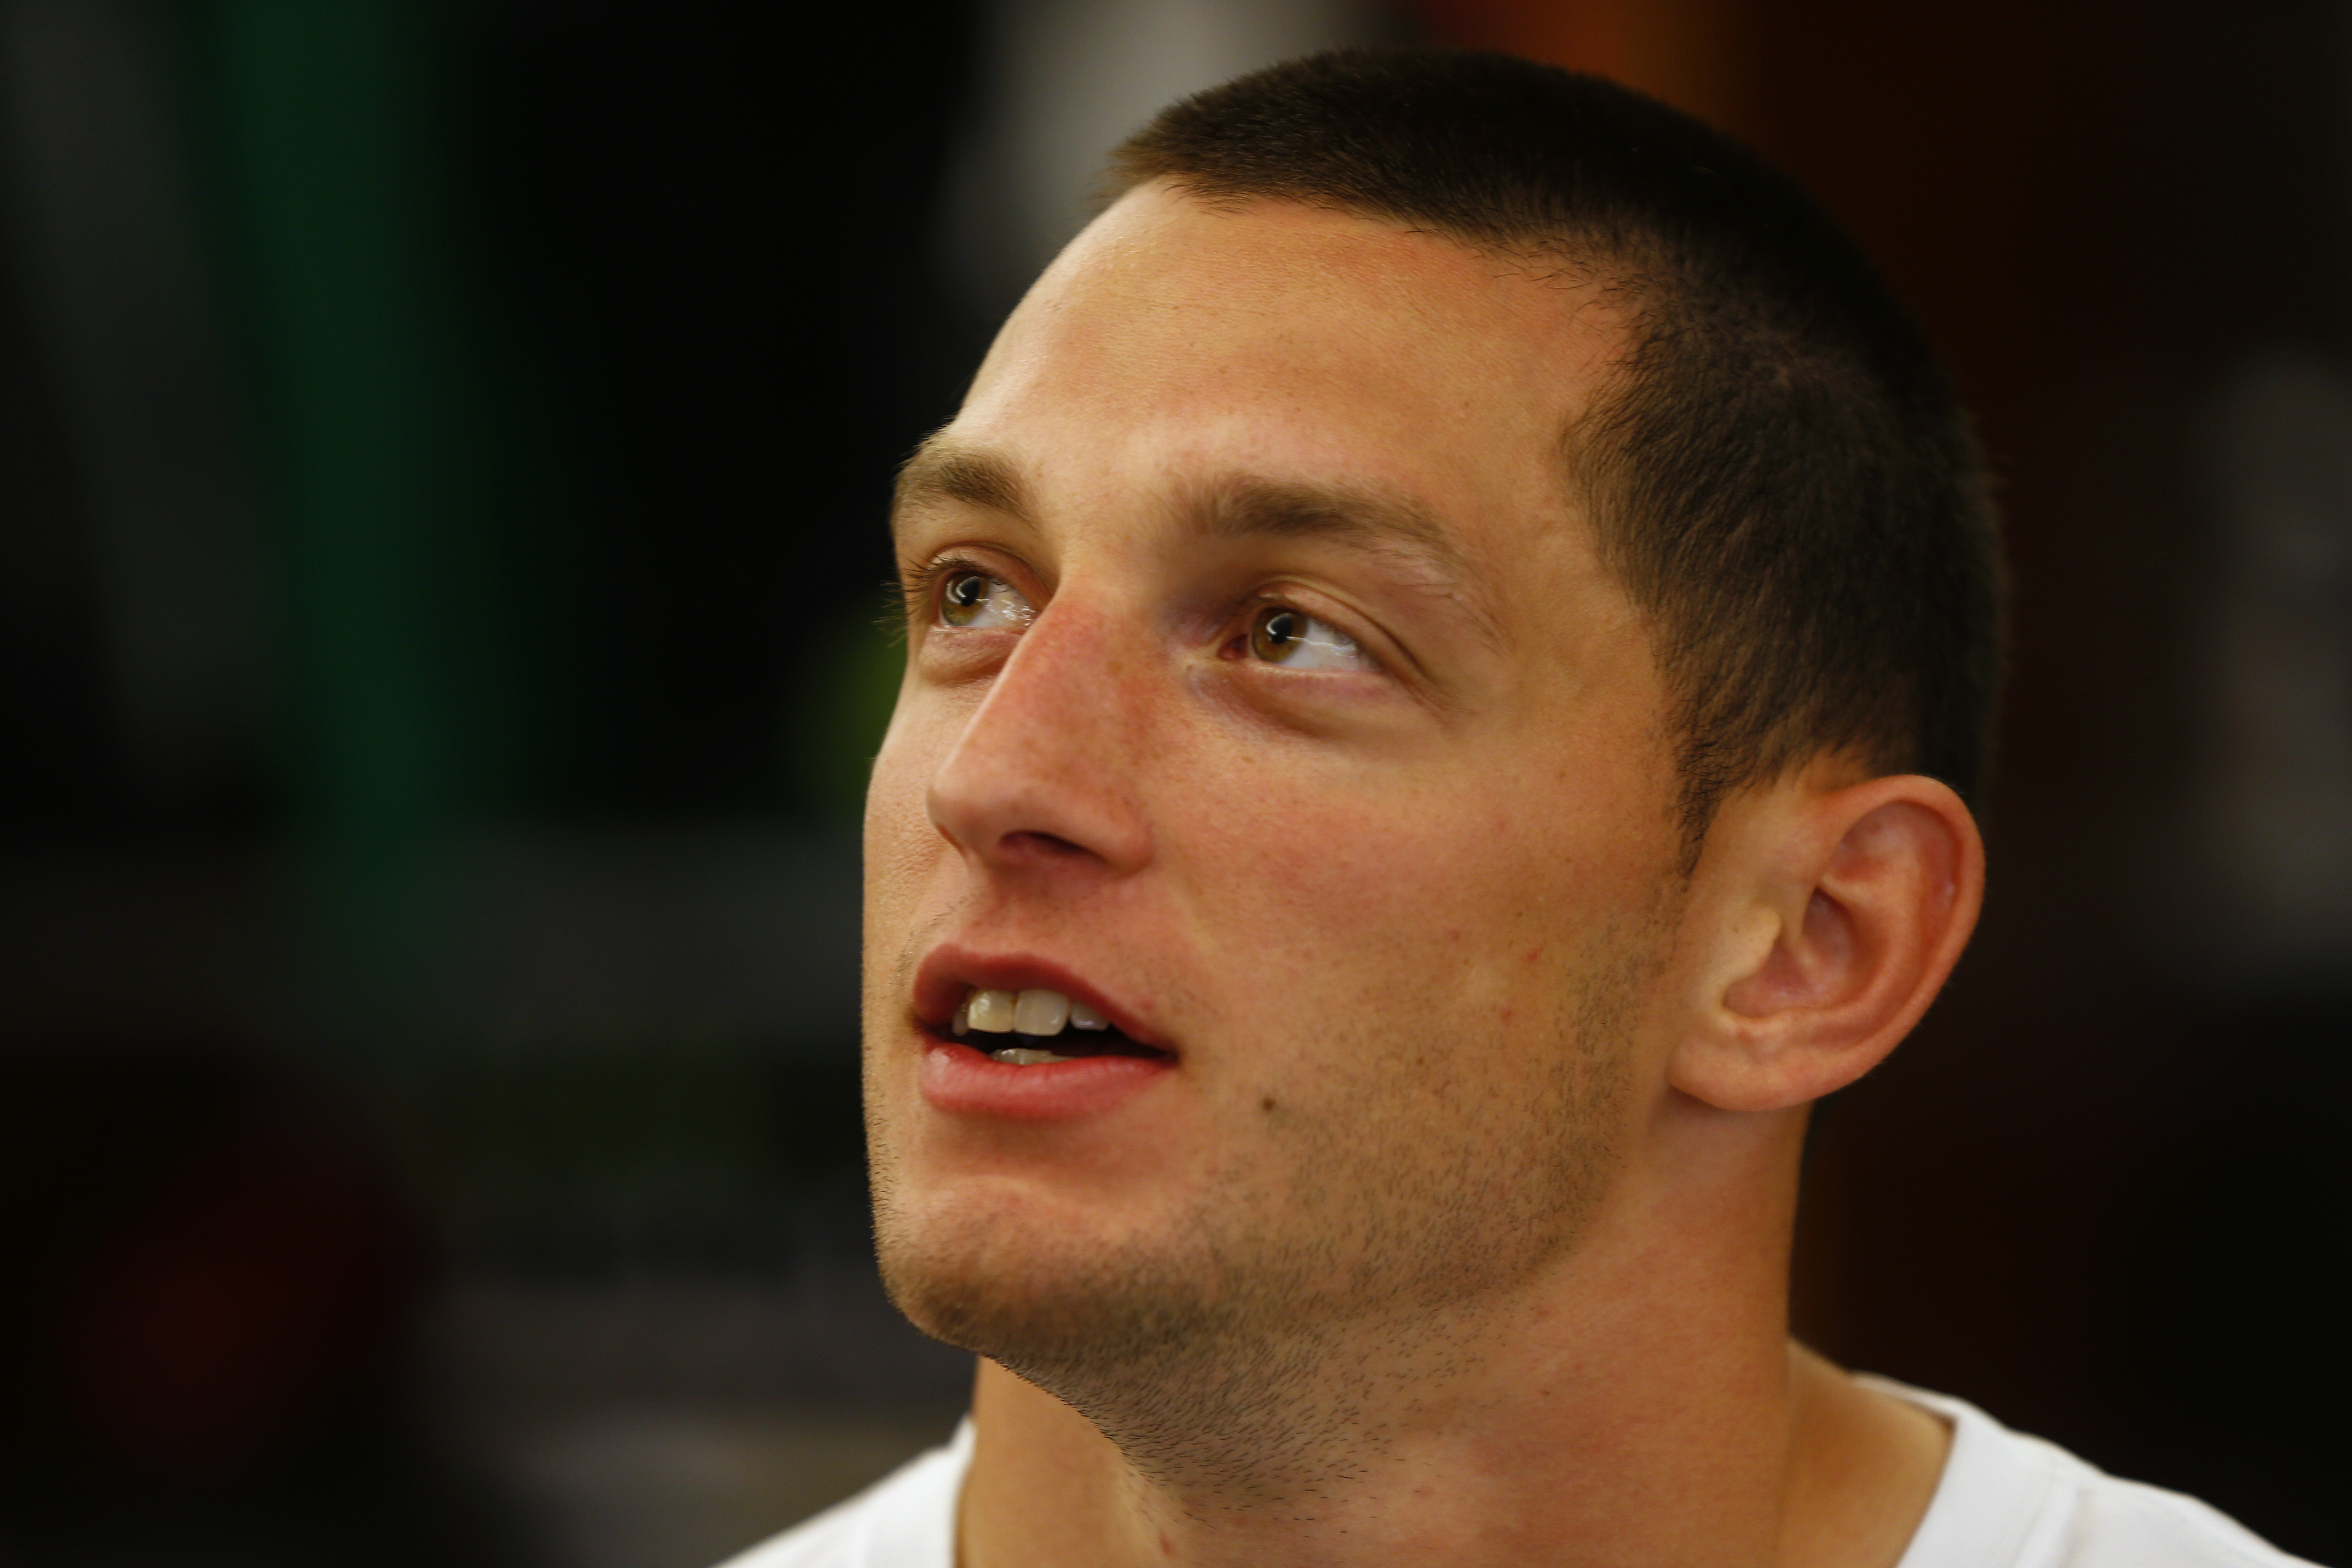 New York Jets safety Ty Zimmerman talks to the media before practice at the team's NFL football rookie minicamp, Saturday, May 9, 2015, in Florham Park, N.J. (AP Photo/Rich Schultz)